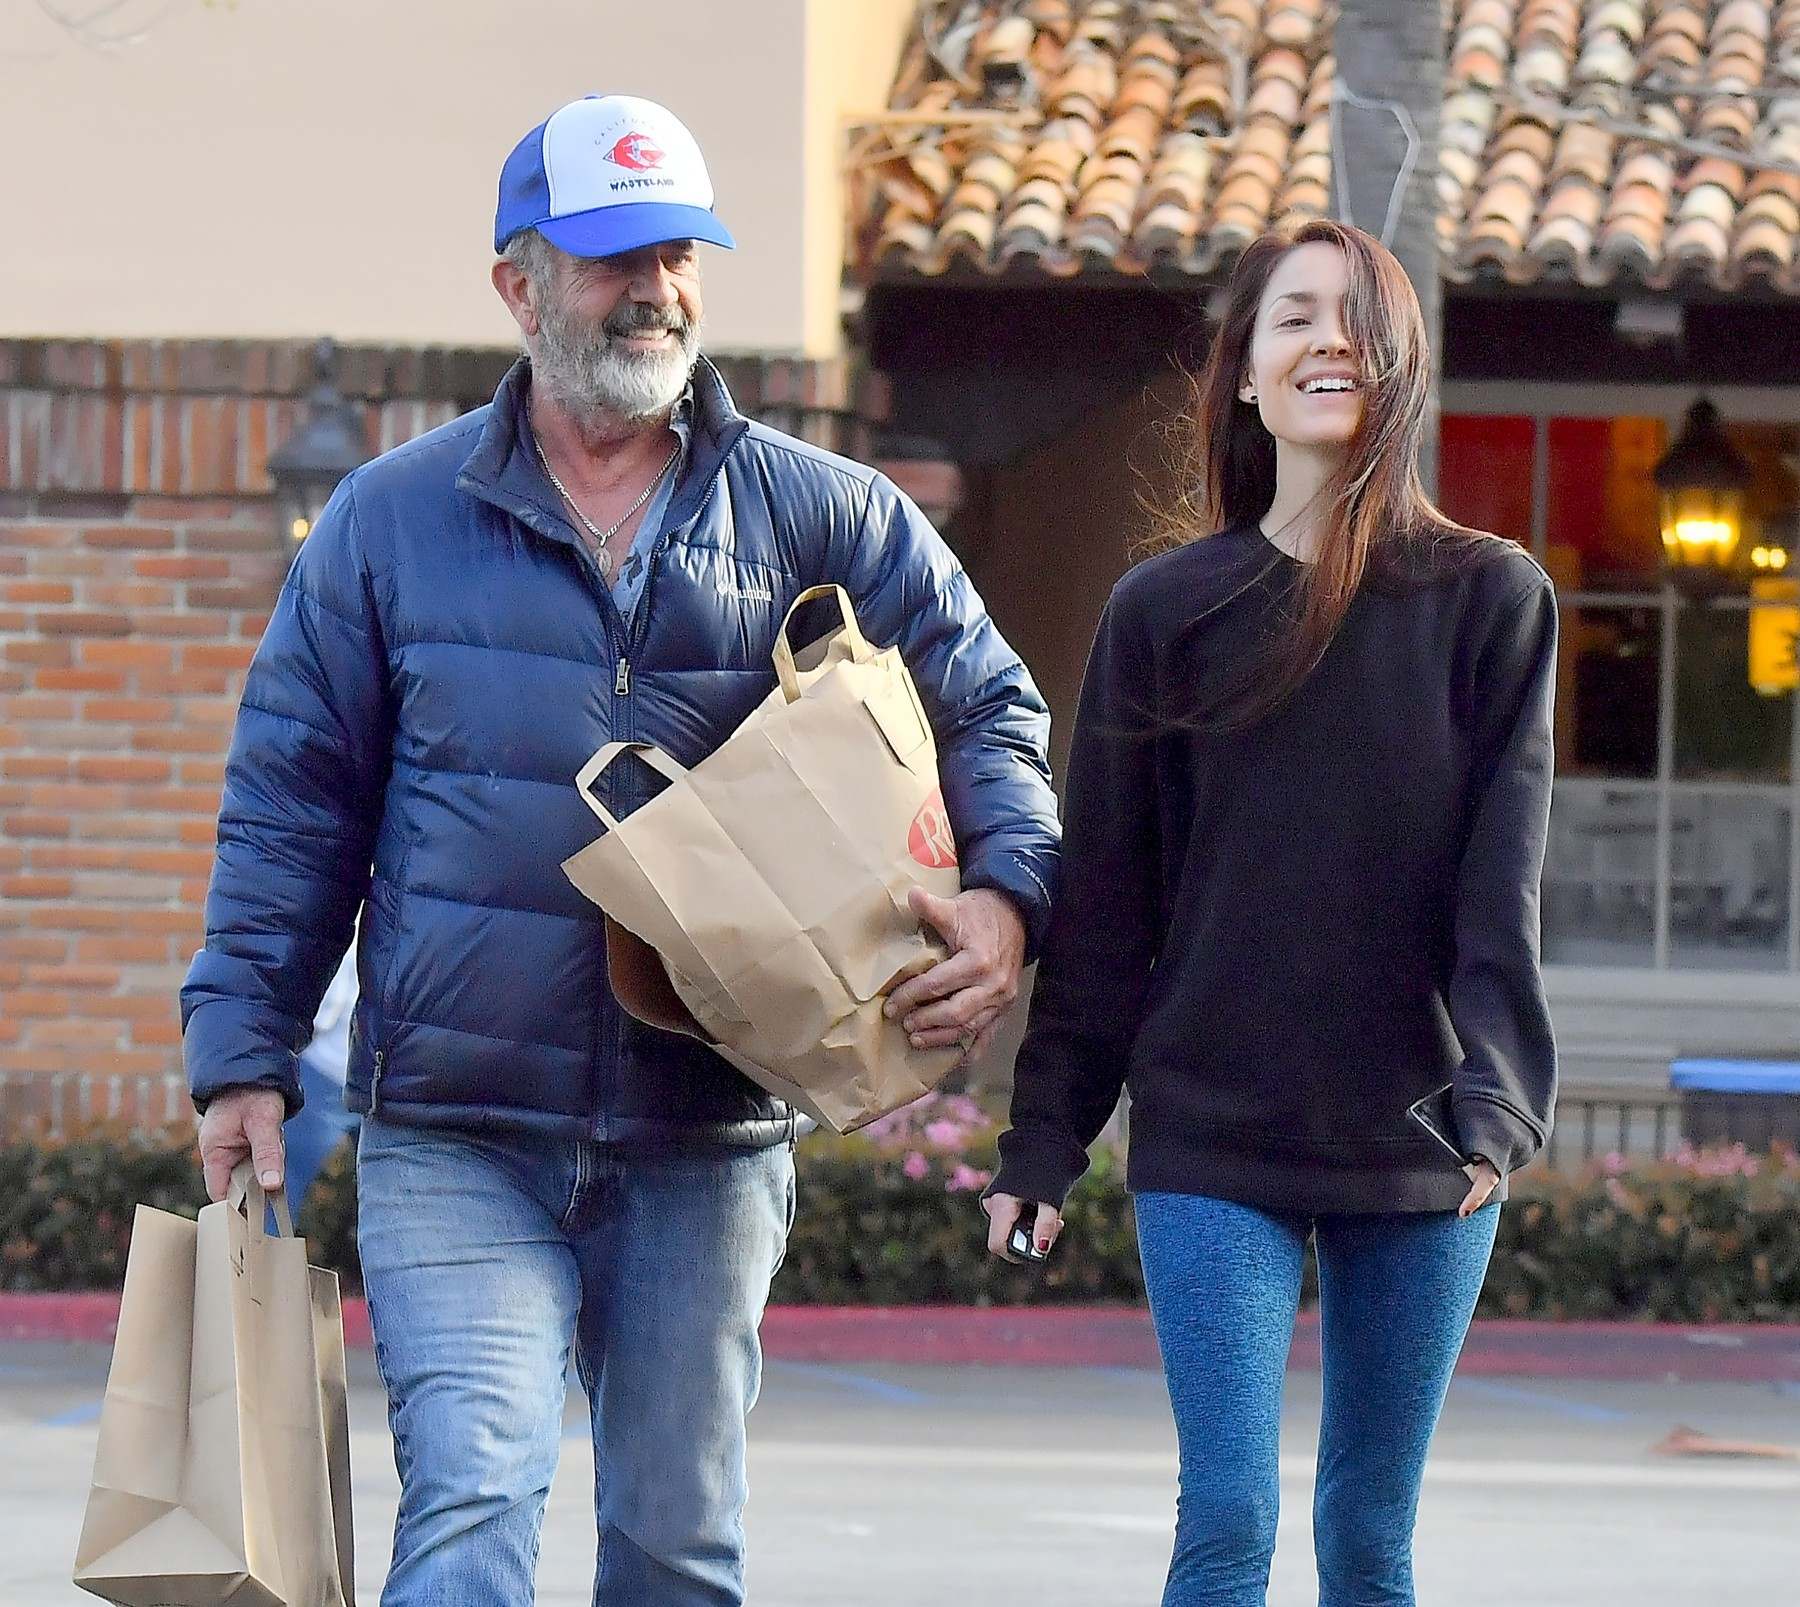 EXCLUSIVE: Mel Gibson and his girlfriend Rosalind Ross stop by a grocery store in Malibu. The pair were seen laughing and smiling as they shopped for groceries at their local Ralph's store. 24 Apr 2019, Image: 418751106, License: Rights-managed, Restrictions: World Rights, Model Release: no, Credit line: Playin' games / MEGA / The Mega Agency / Profimedia